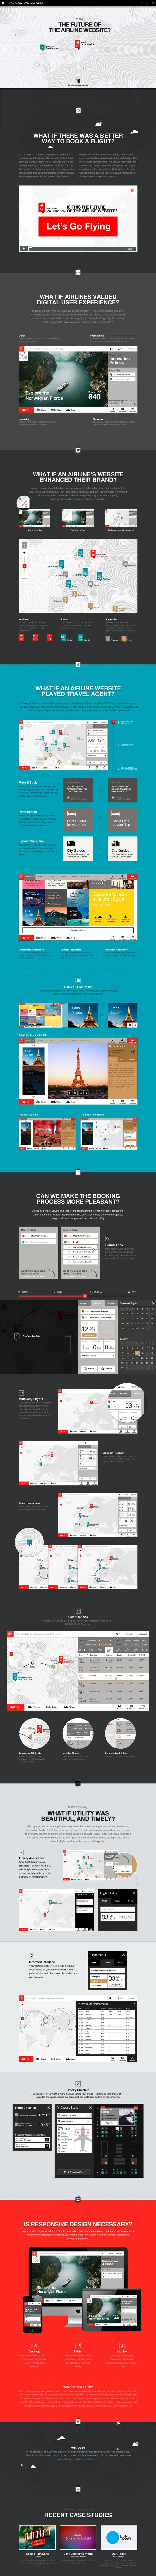 The Future of Airline Websites(?) by chris rubin, via Behance